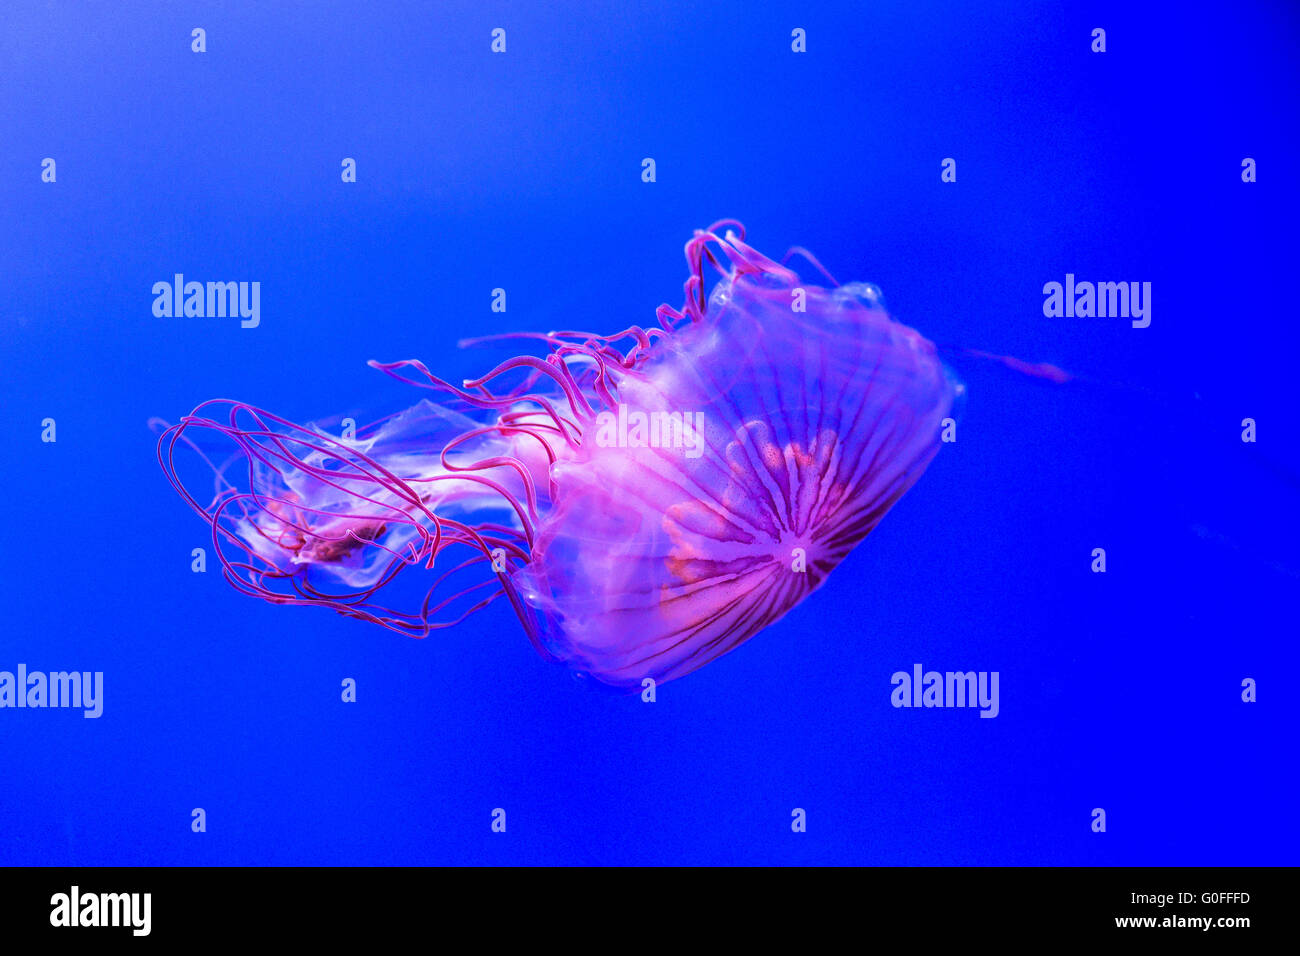 Northern sea nettle, chrysaora melanaster, moving in the water. This jellyfish can reach 60 centimeters in length - Stock Image